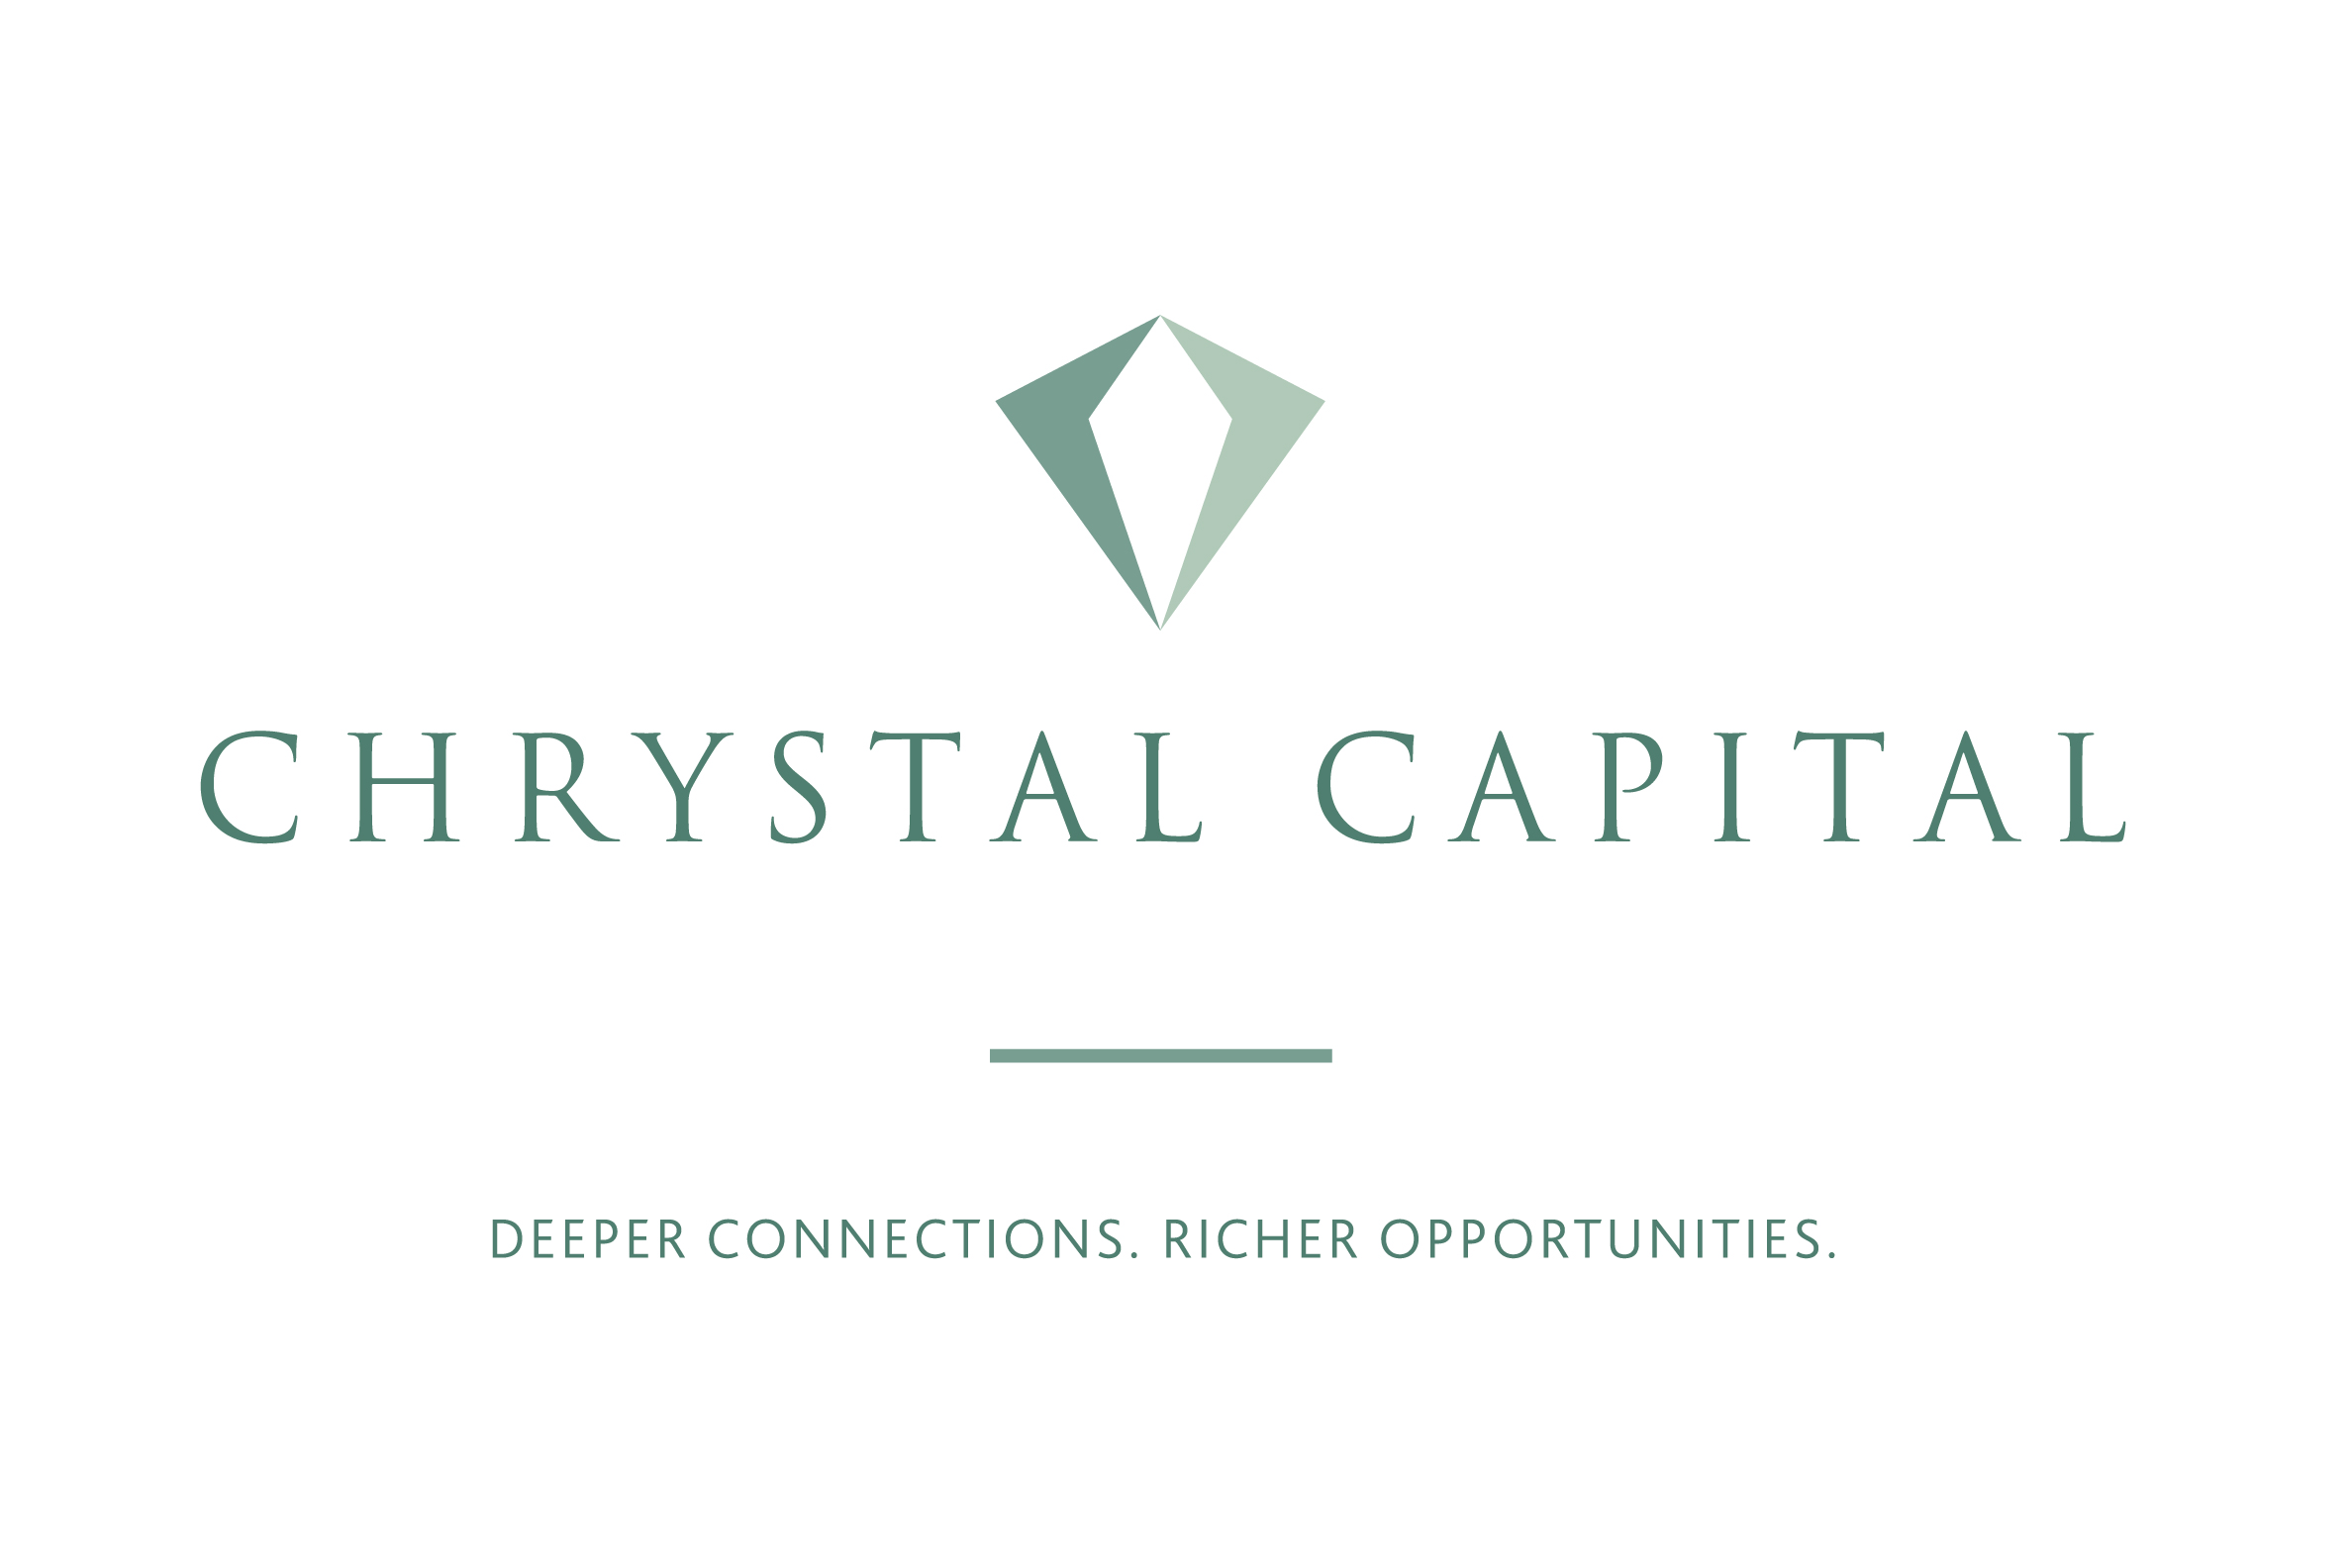 Chrystal Capital refreshed logo as part of new rebrand